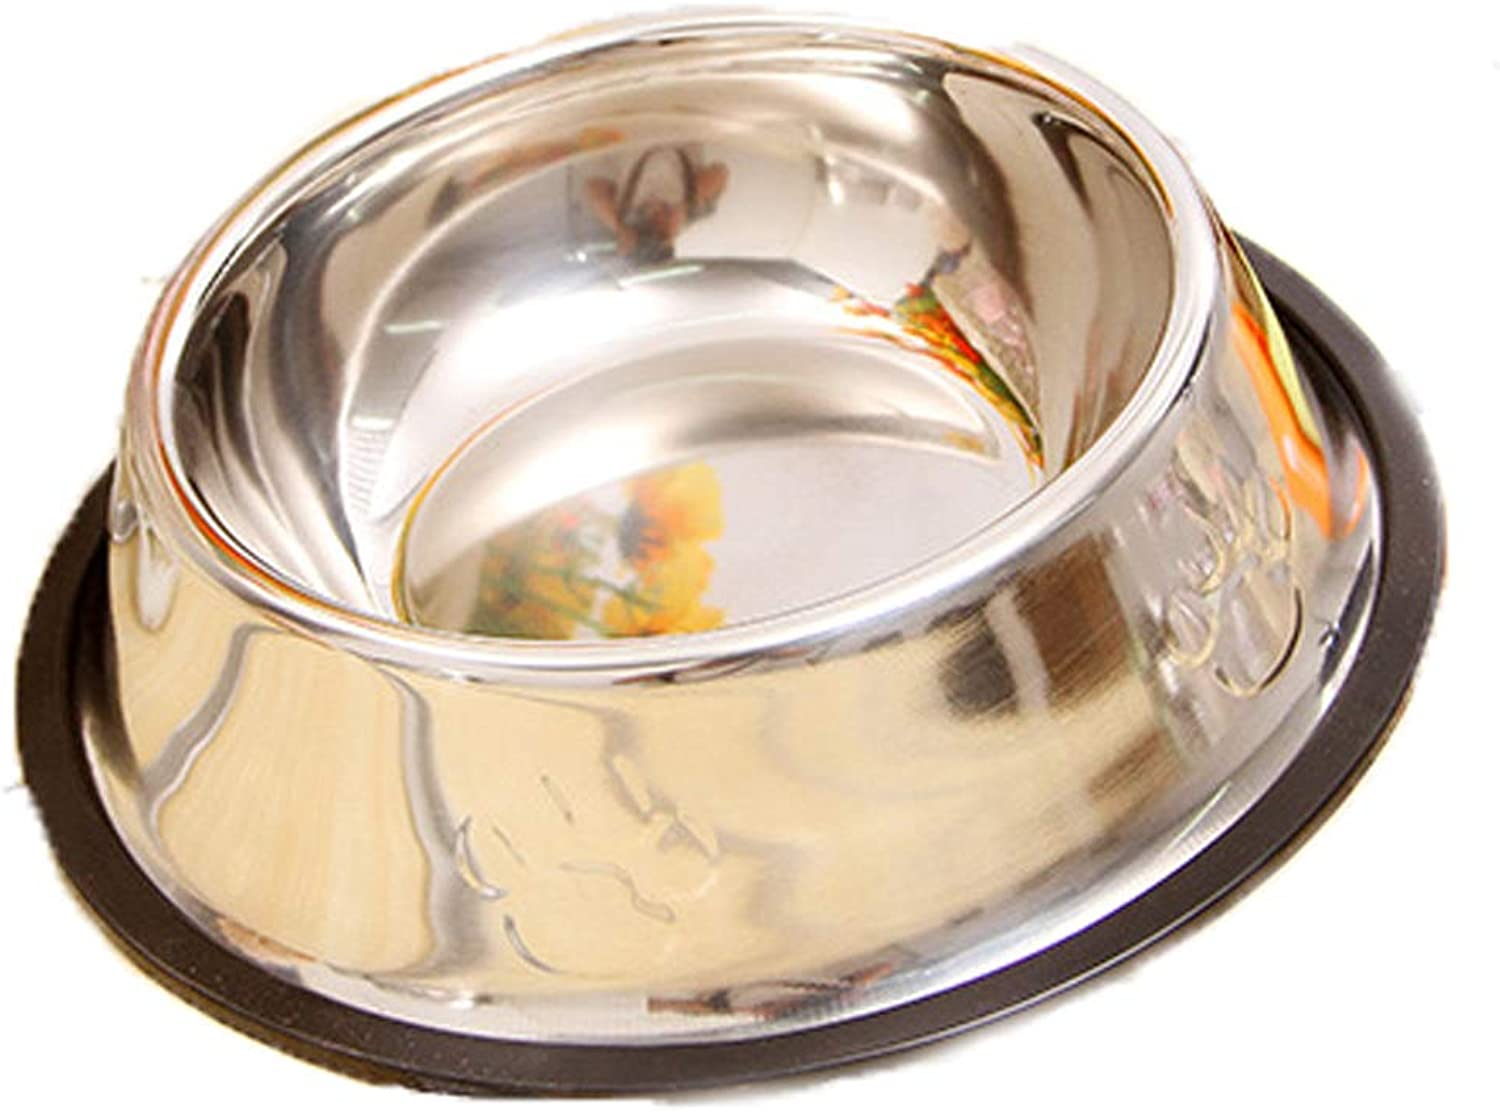 Cat Bowl Stainless Steel Cat Bowl Pet Stainless Steel Bowl Rubber Base Suitable for Small and Medium Dogs Pet Feeding Bowl and Water Bowl Perfect Choice,XS